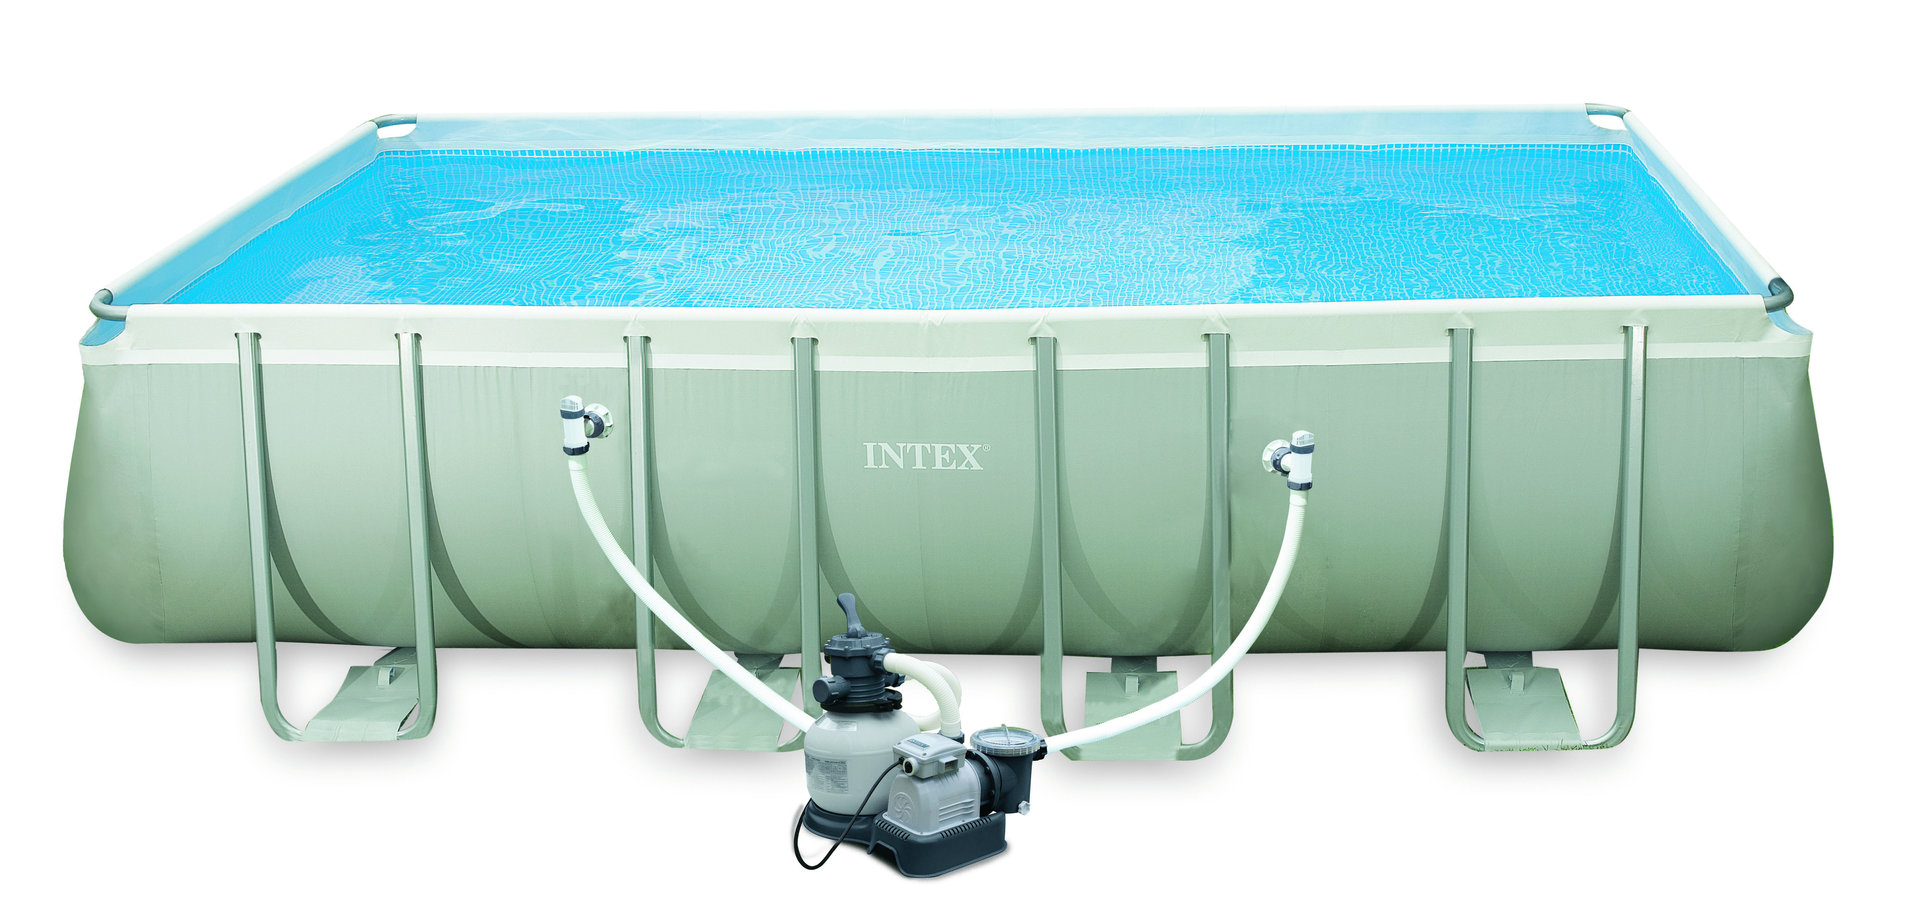 Frame Pool Set Ultra Quadra Ii Mit Salzwassersystem Quotultra Quadra Quot Frame Pool Set Von Intex Bei Bavchem